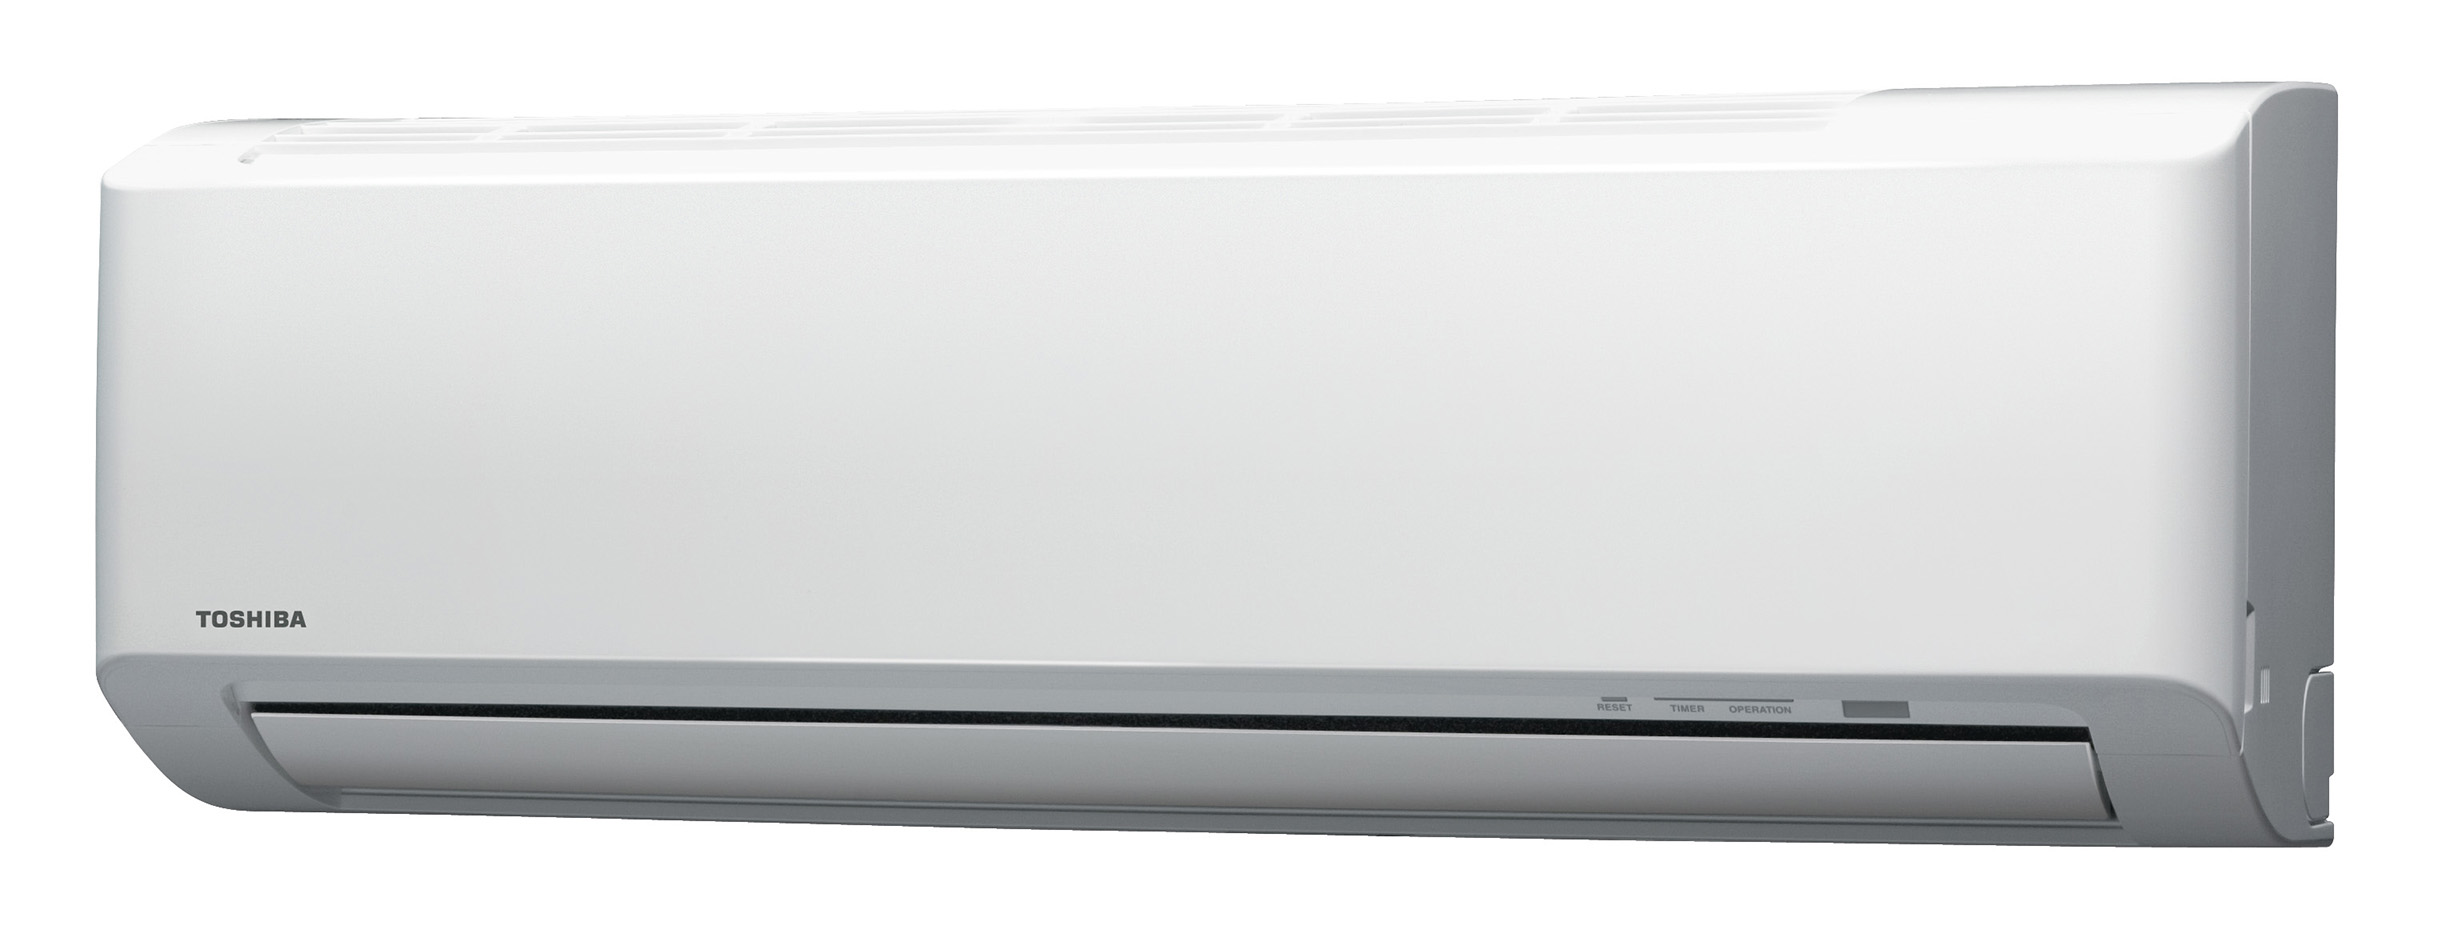 Multi Split System Air Conditioners Toshiba Air Conditioning #202324